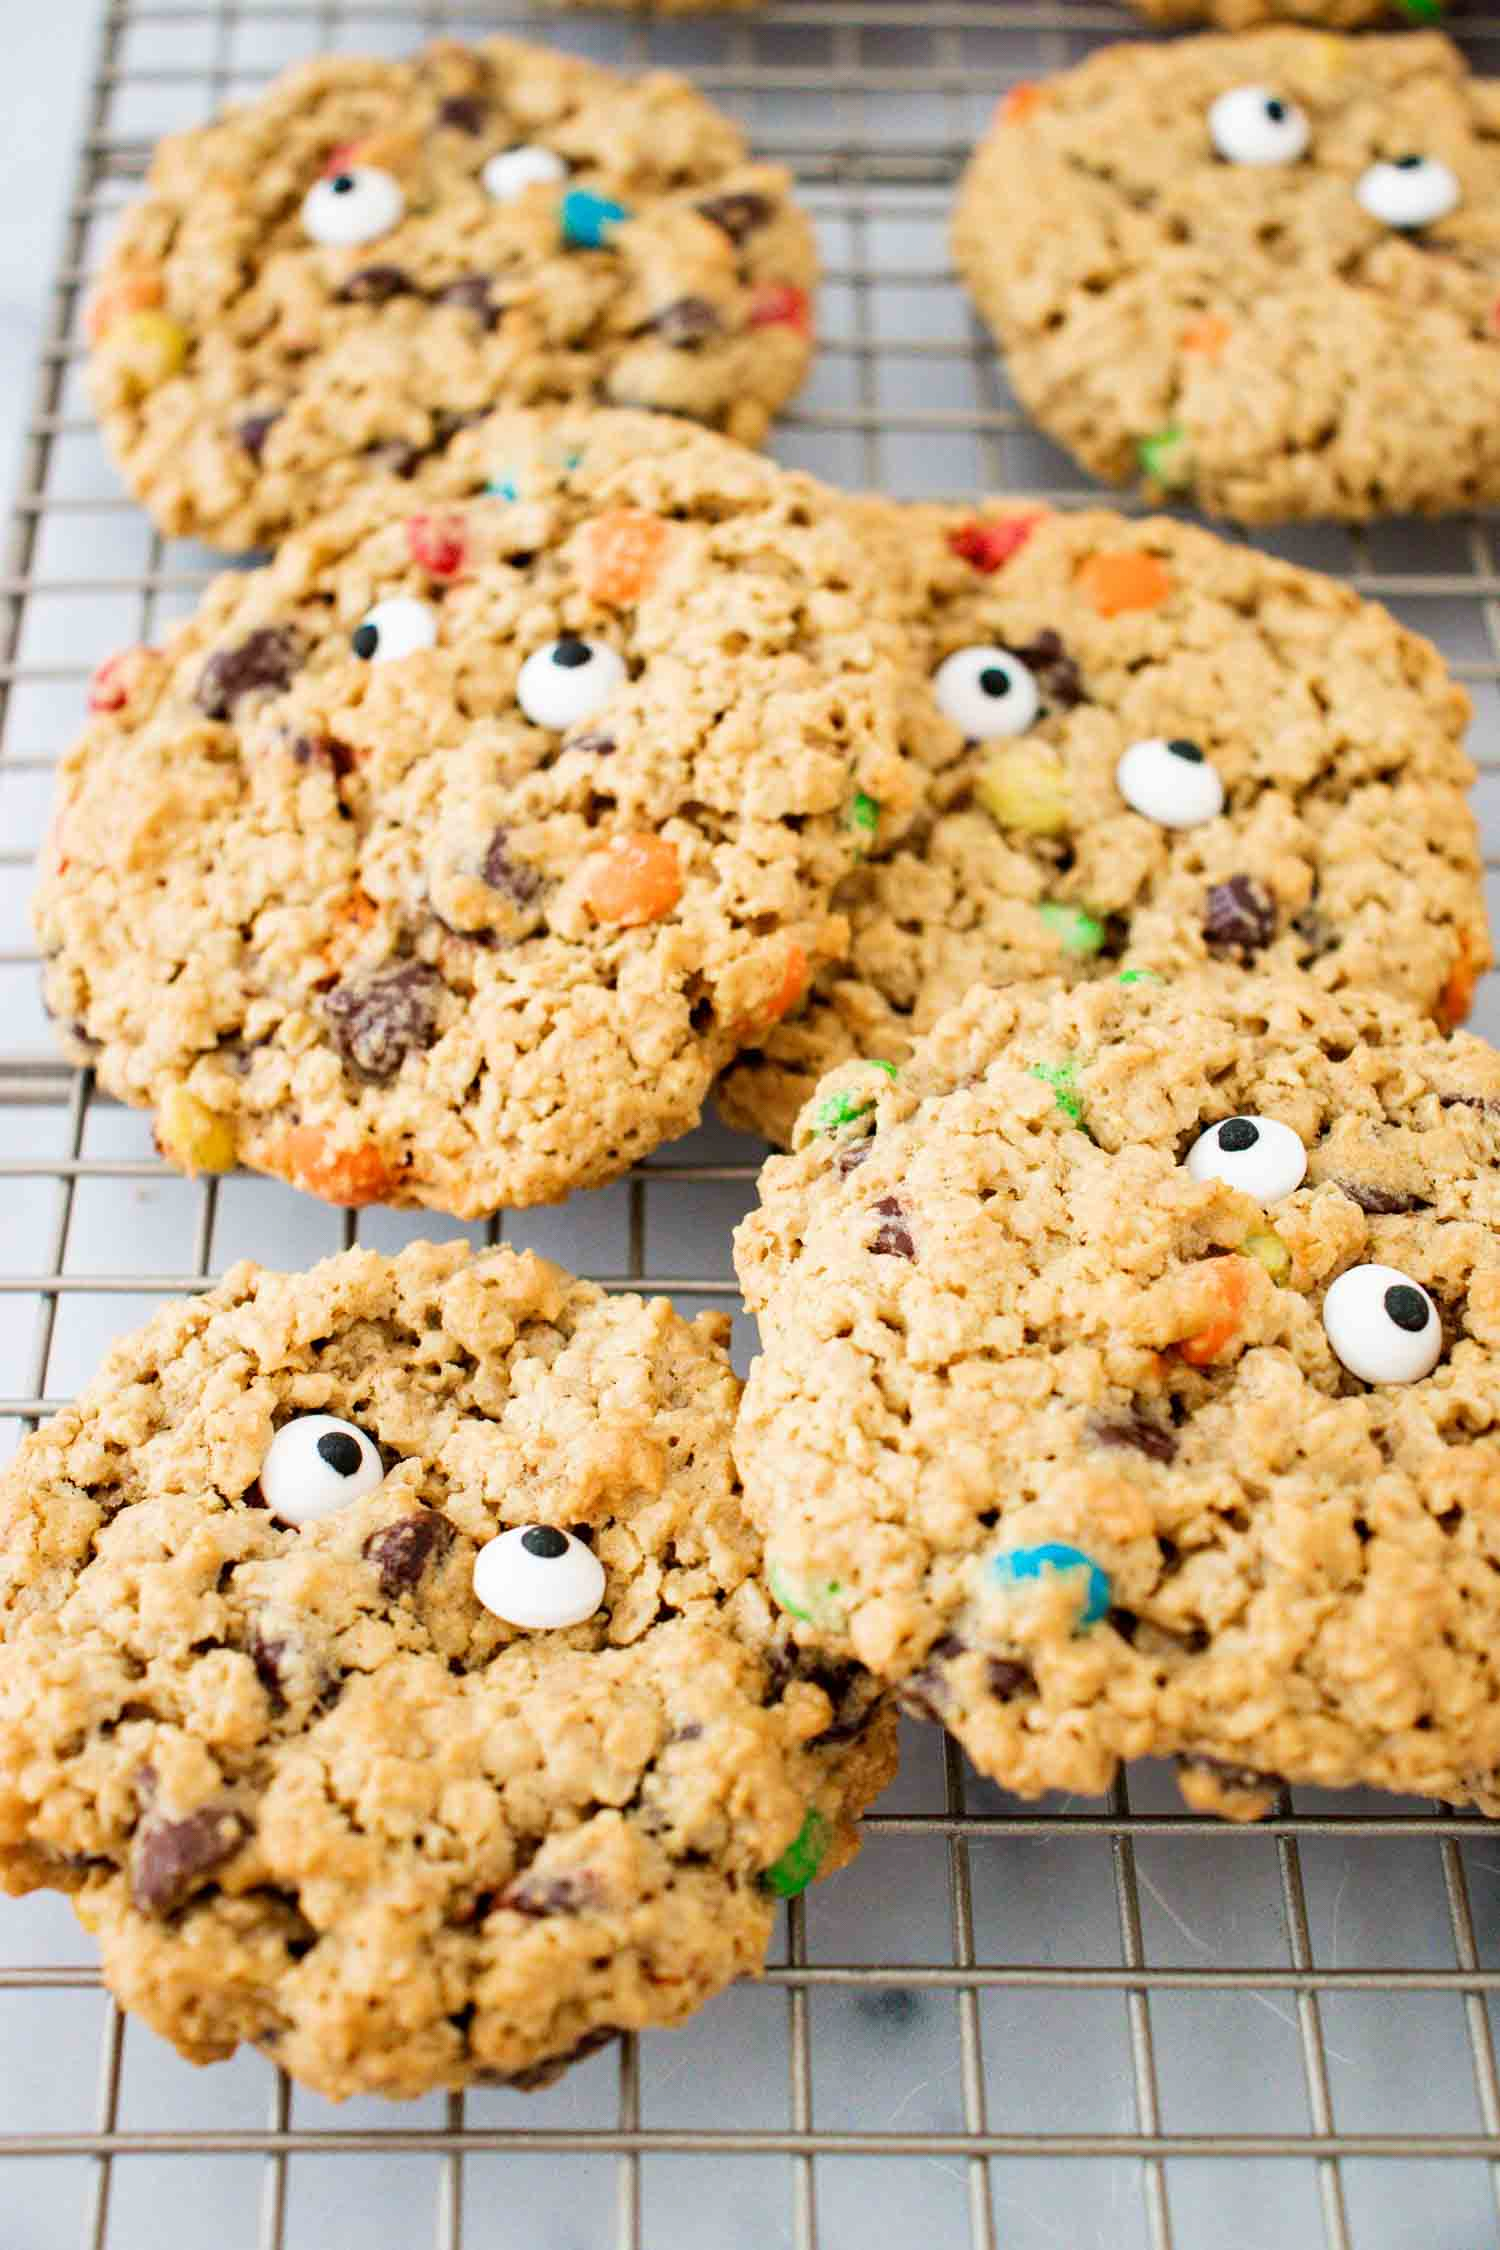 6 baked monster eye cookies on a wire rack